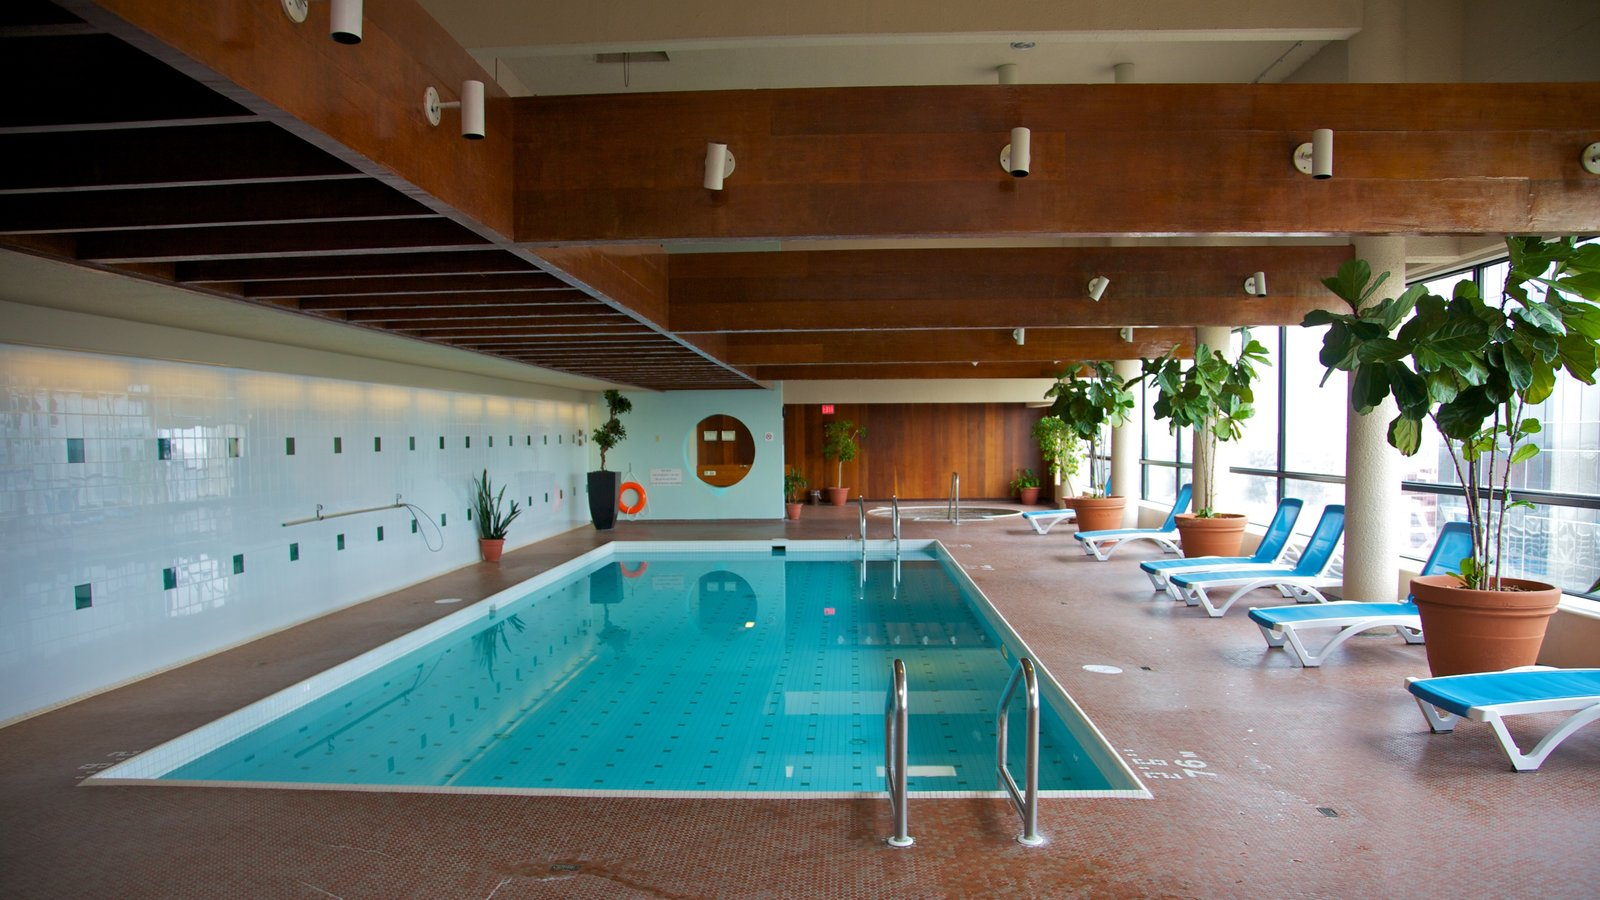 Edmonton featuring a pool and interior views